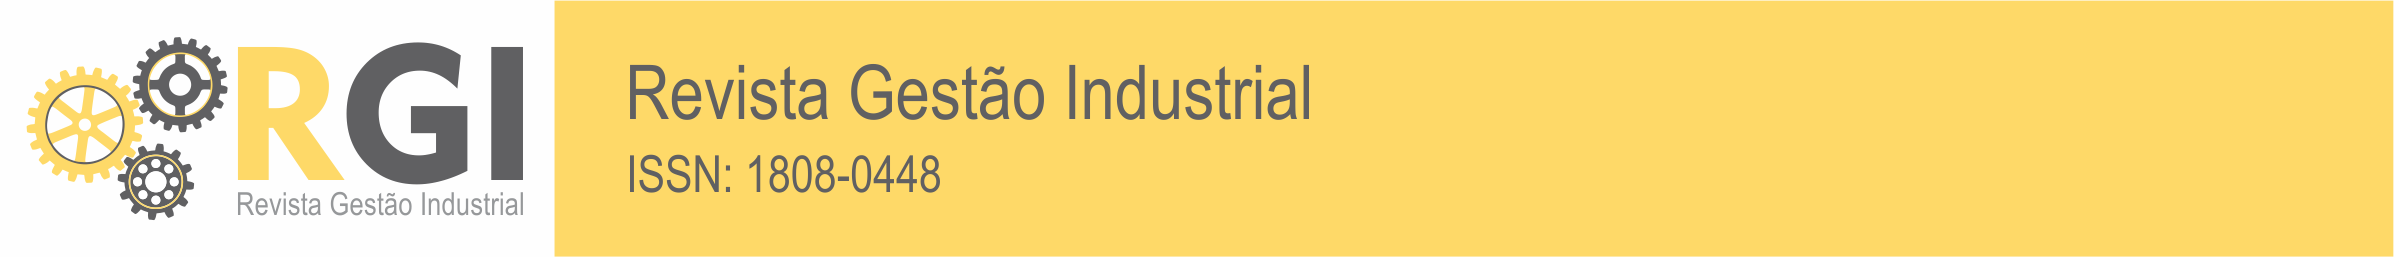 Gestao Industrial - Journal  (Revista Gestão Industrial)